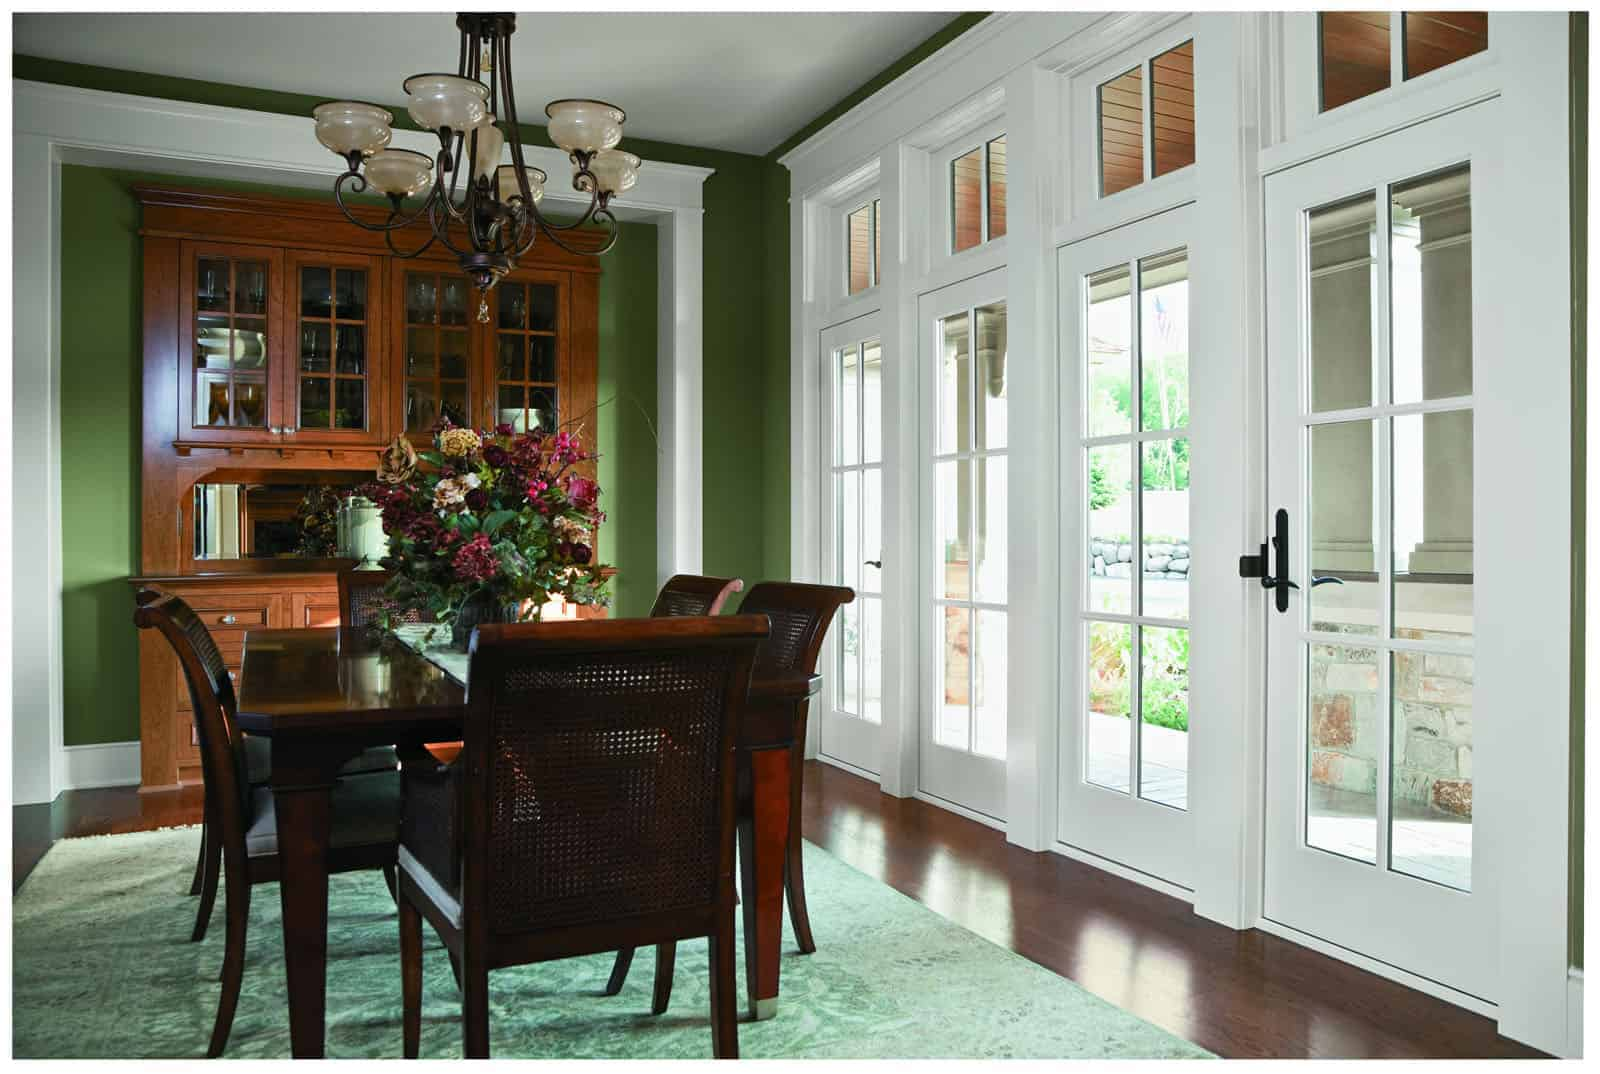 Wood windows and glass patio doors lead into remodeled dining room